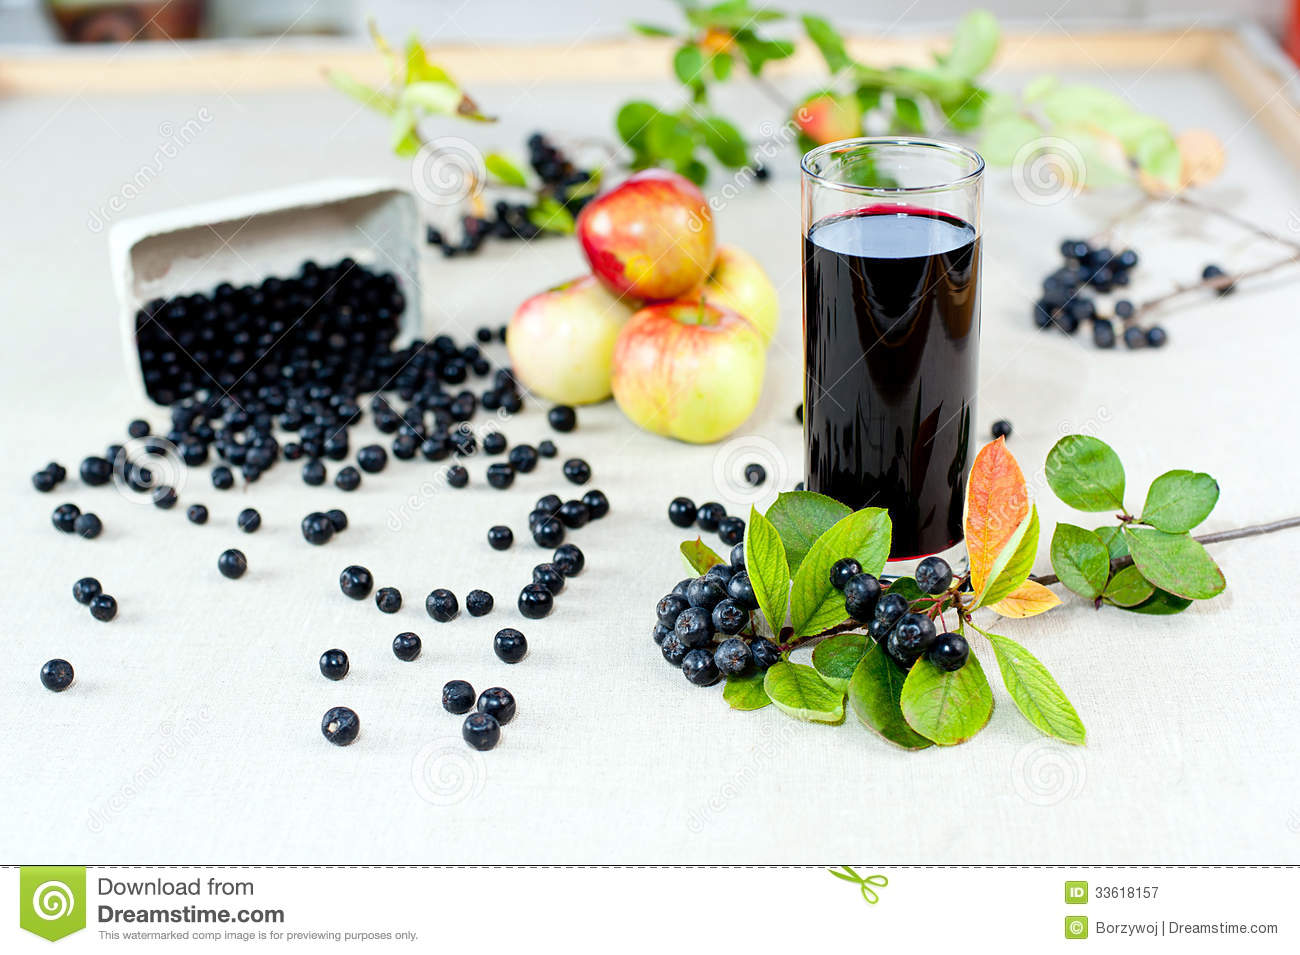 aronia juice royalty free stock photography image 33618157. Black Bedroom Furniture Sets. Home Design Ideas